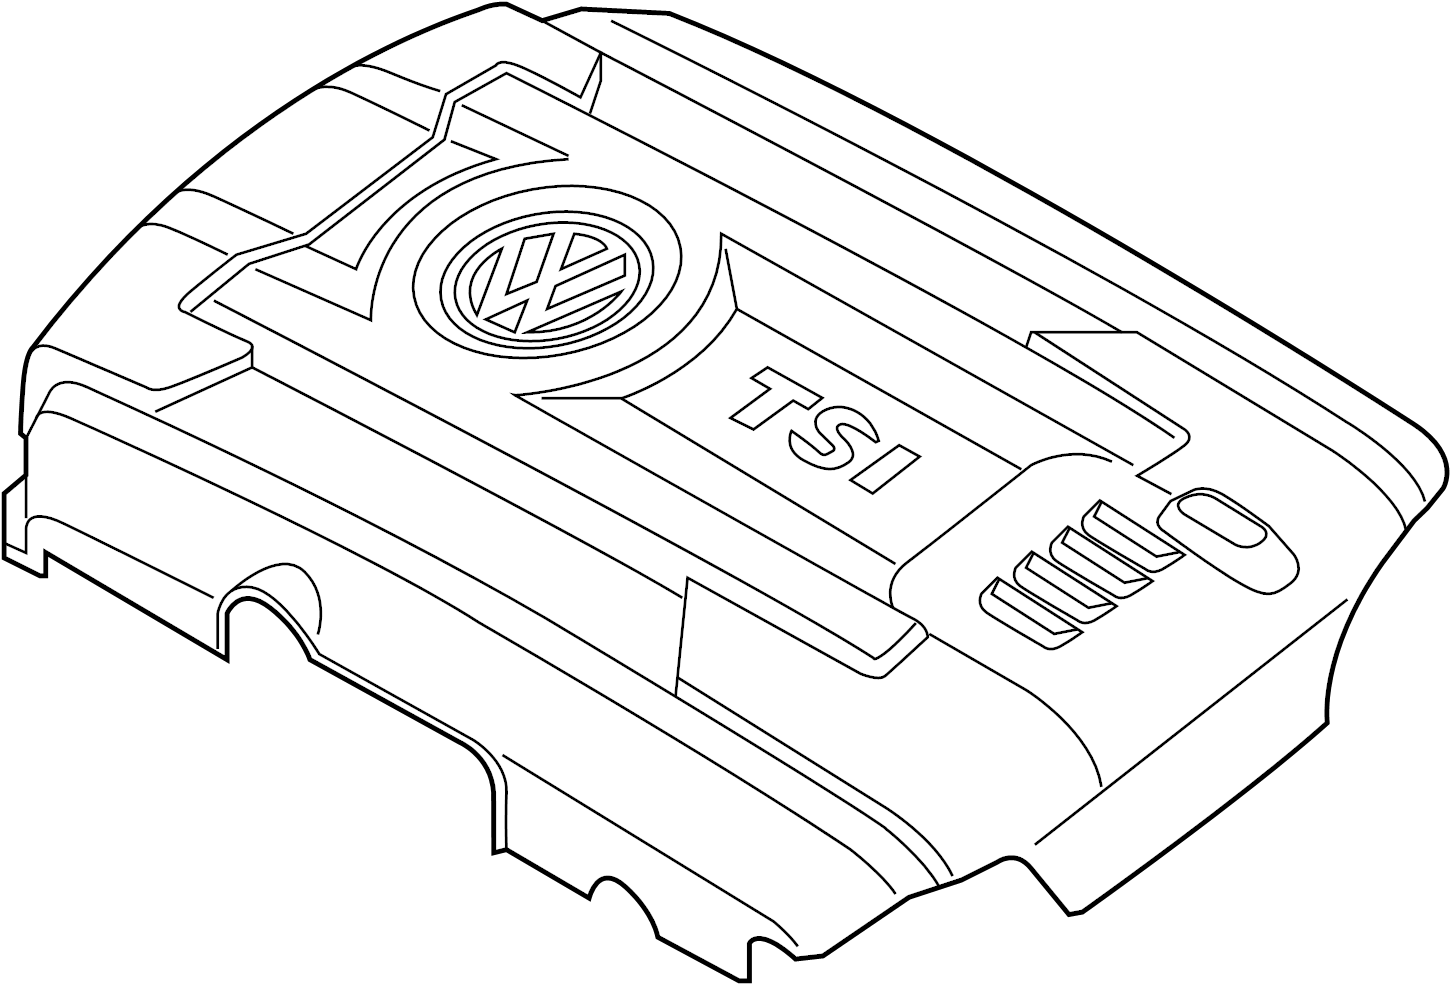 Volkswagen Jetta GLI Engine Cover. 2.0 LITER, from 05/12